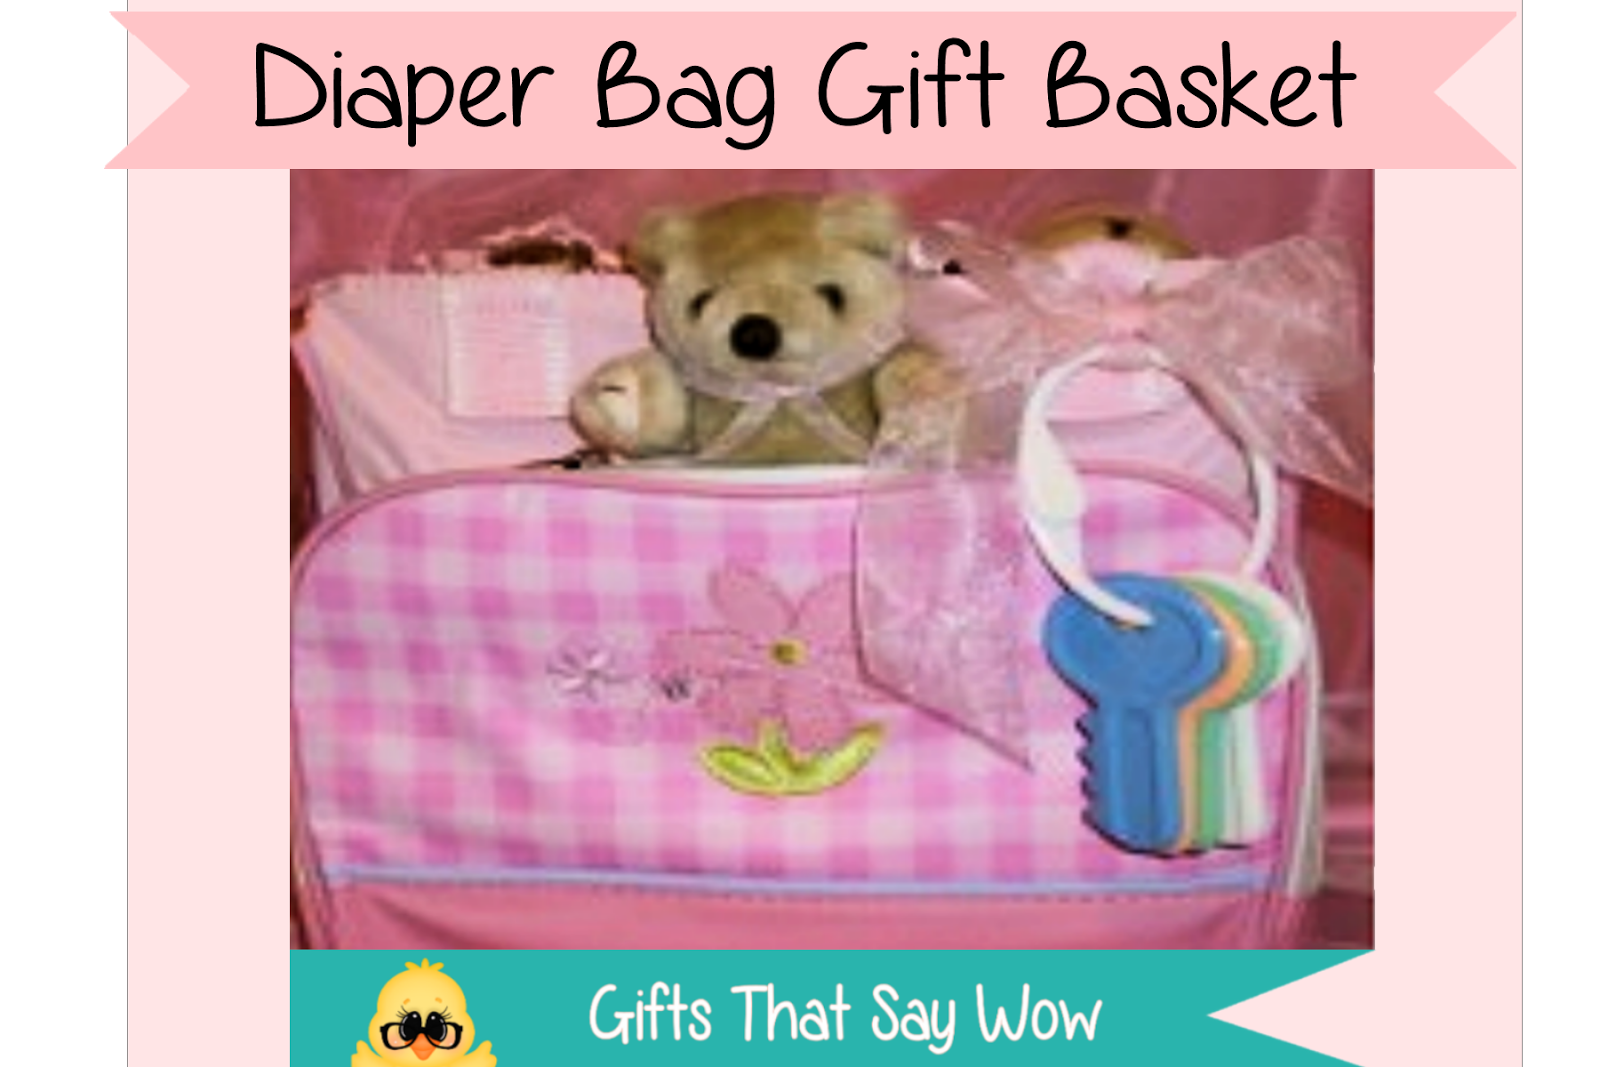 gifts that say wow  fun crafts and gift ideas baby shower gifts, Baby shower